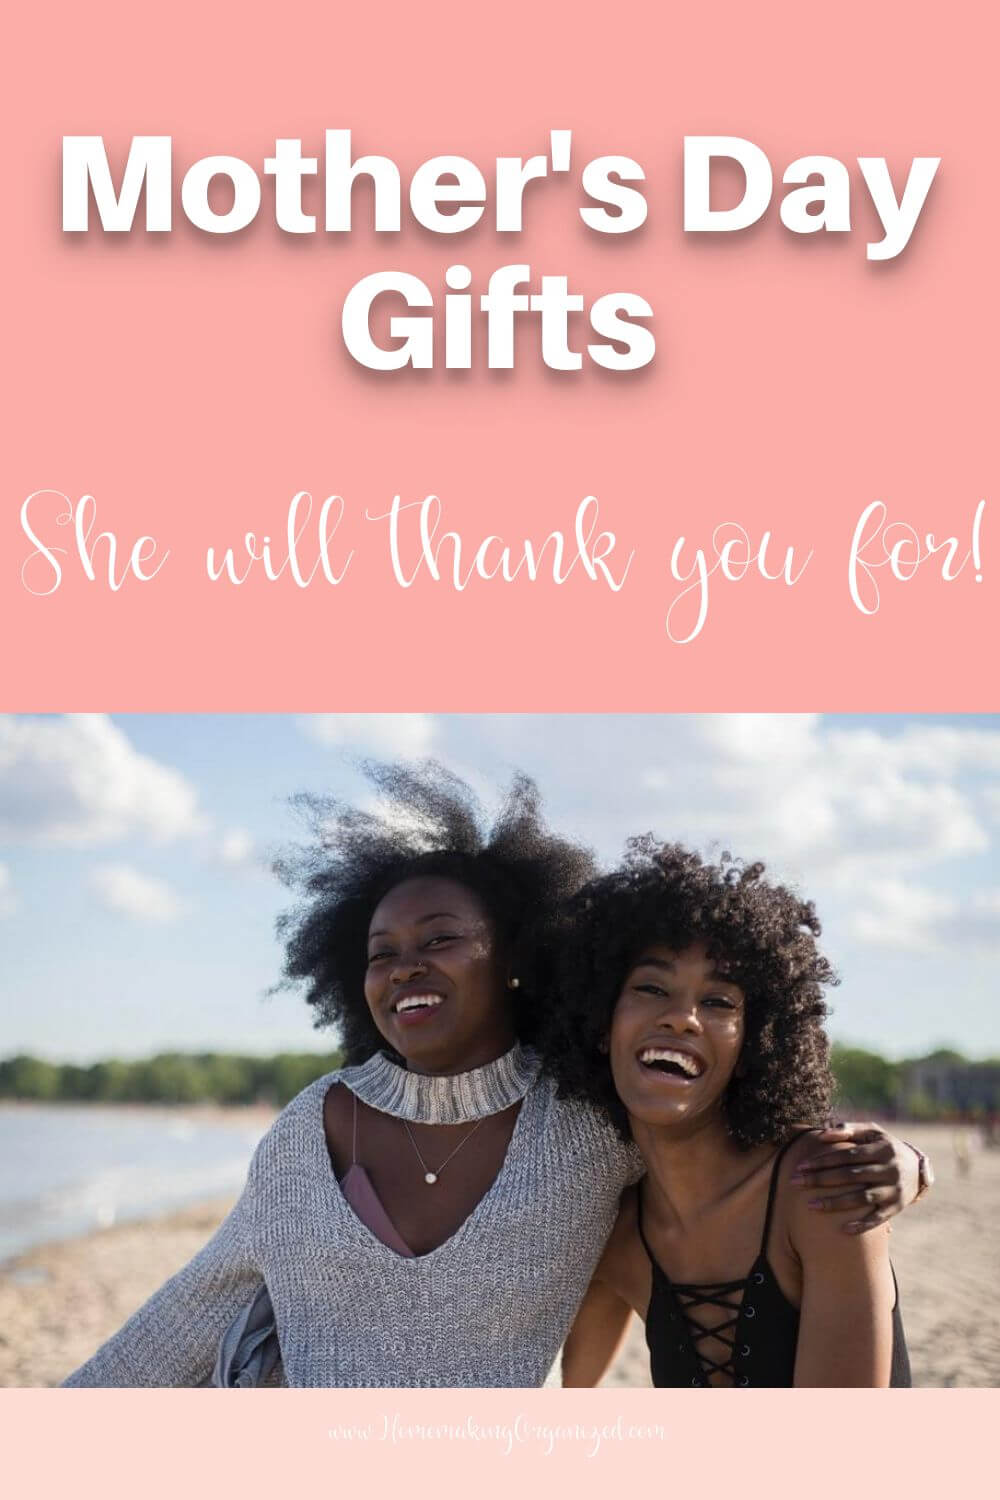 Mother's Day Gifts she will thank you for.